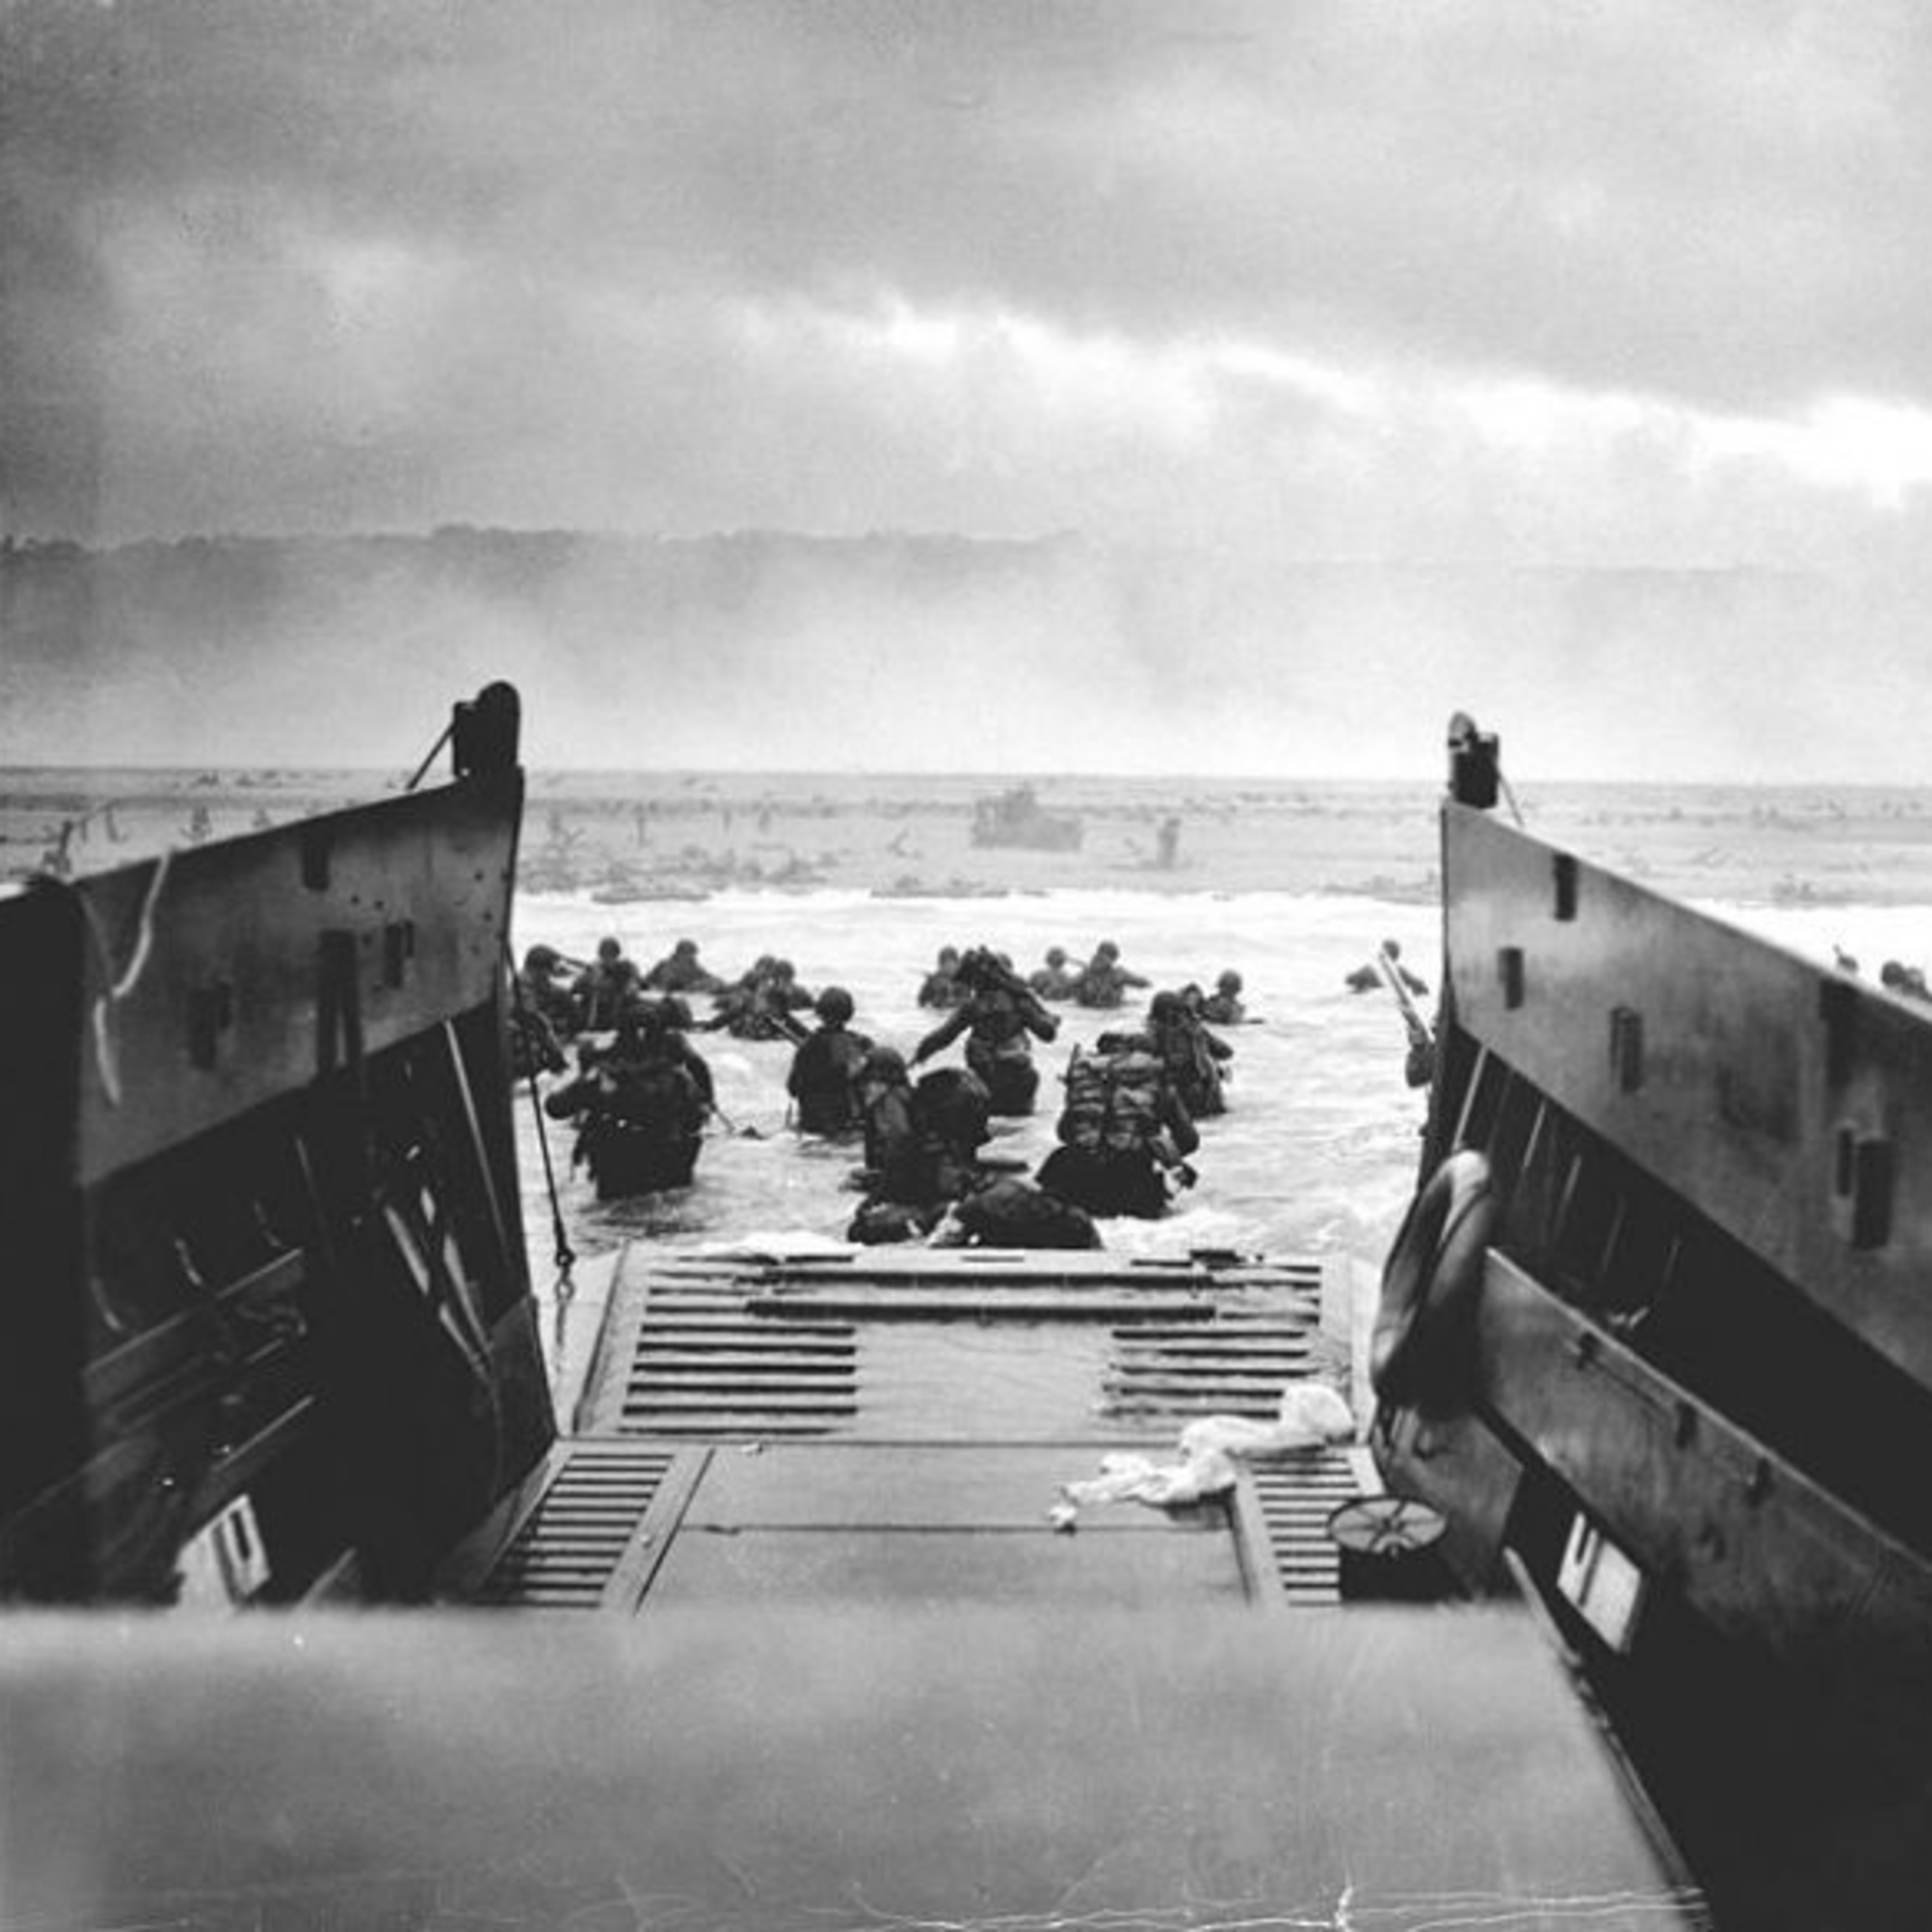 D-Day - Rare Recording of Complete CBS Radio Broadcast Day - June 6, 1944 - Part 11 - Live History on the Radio!